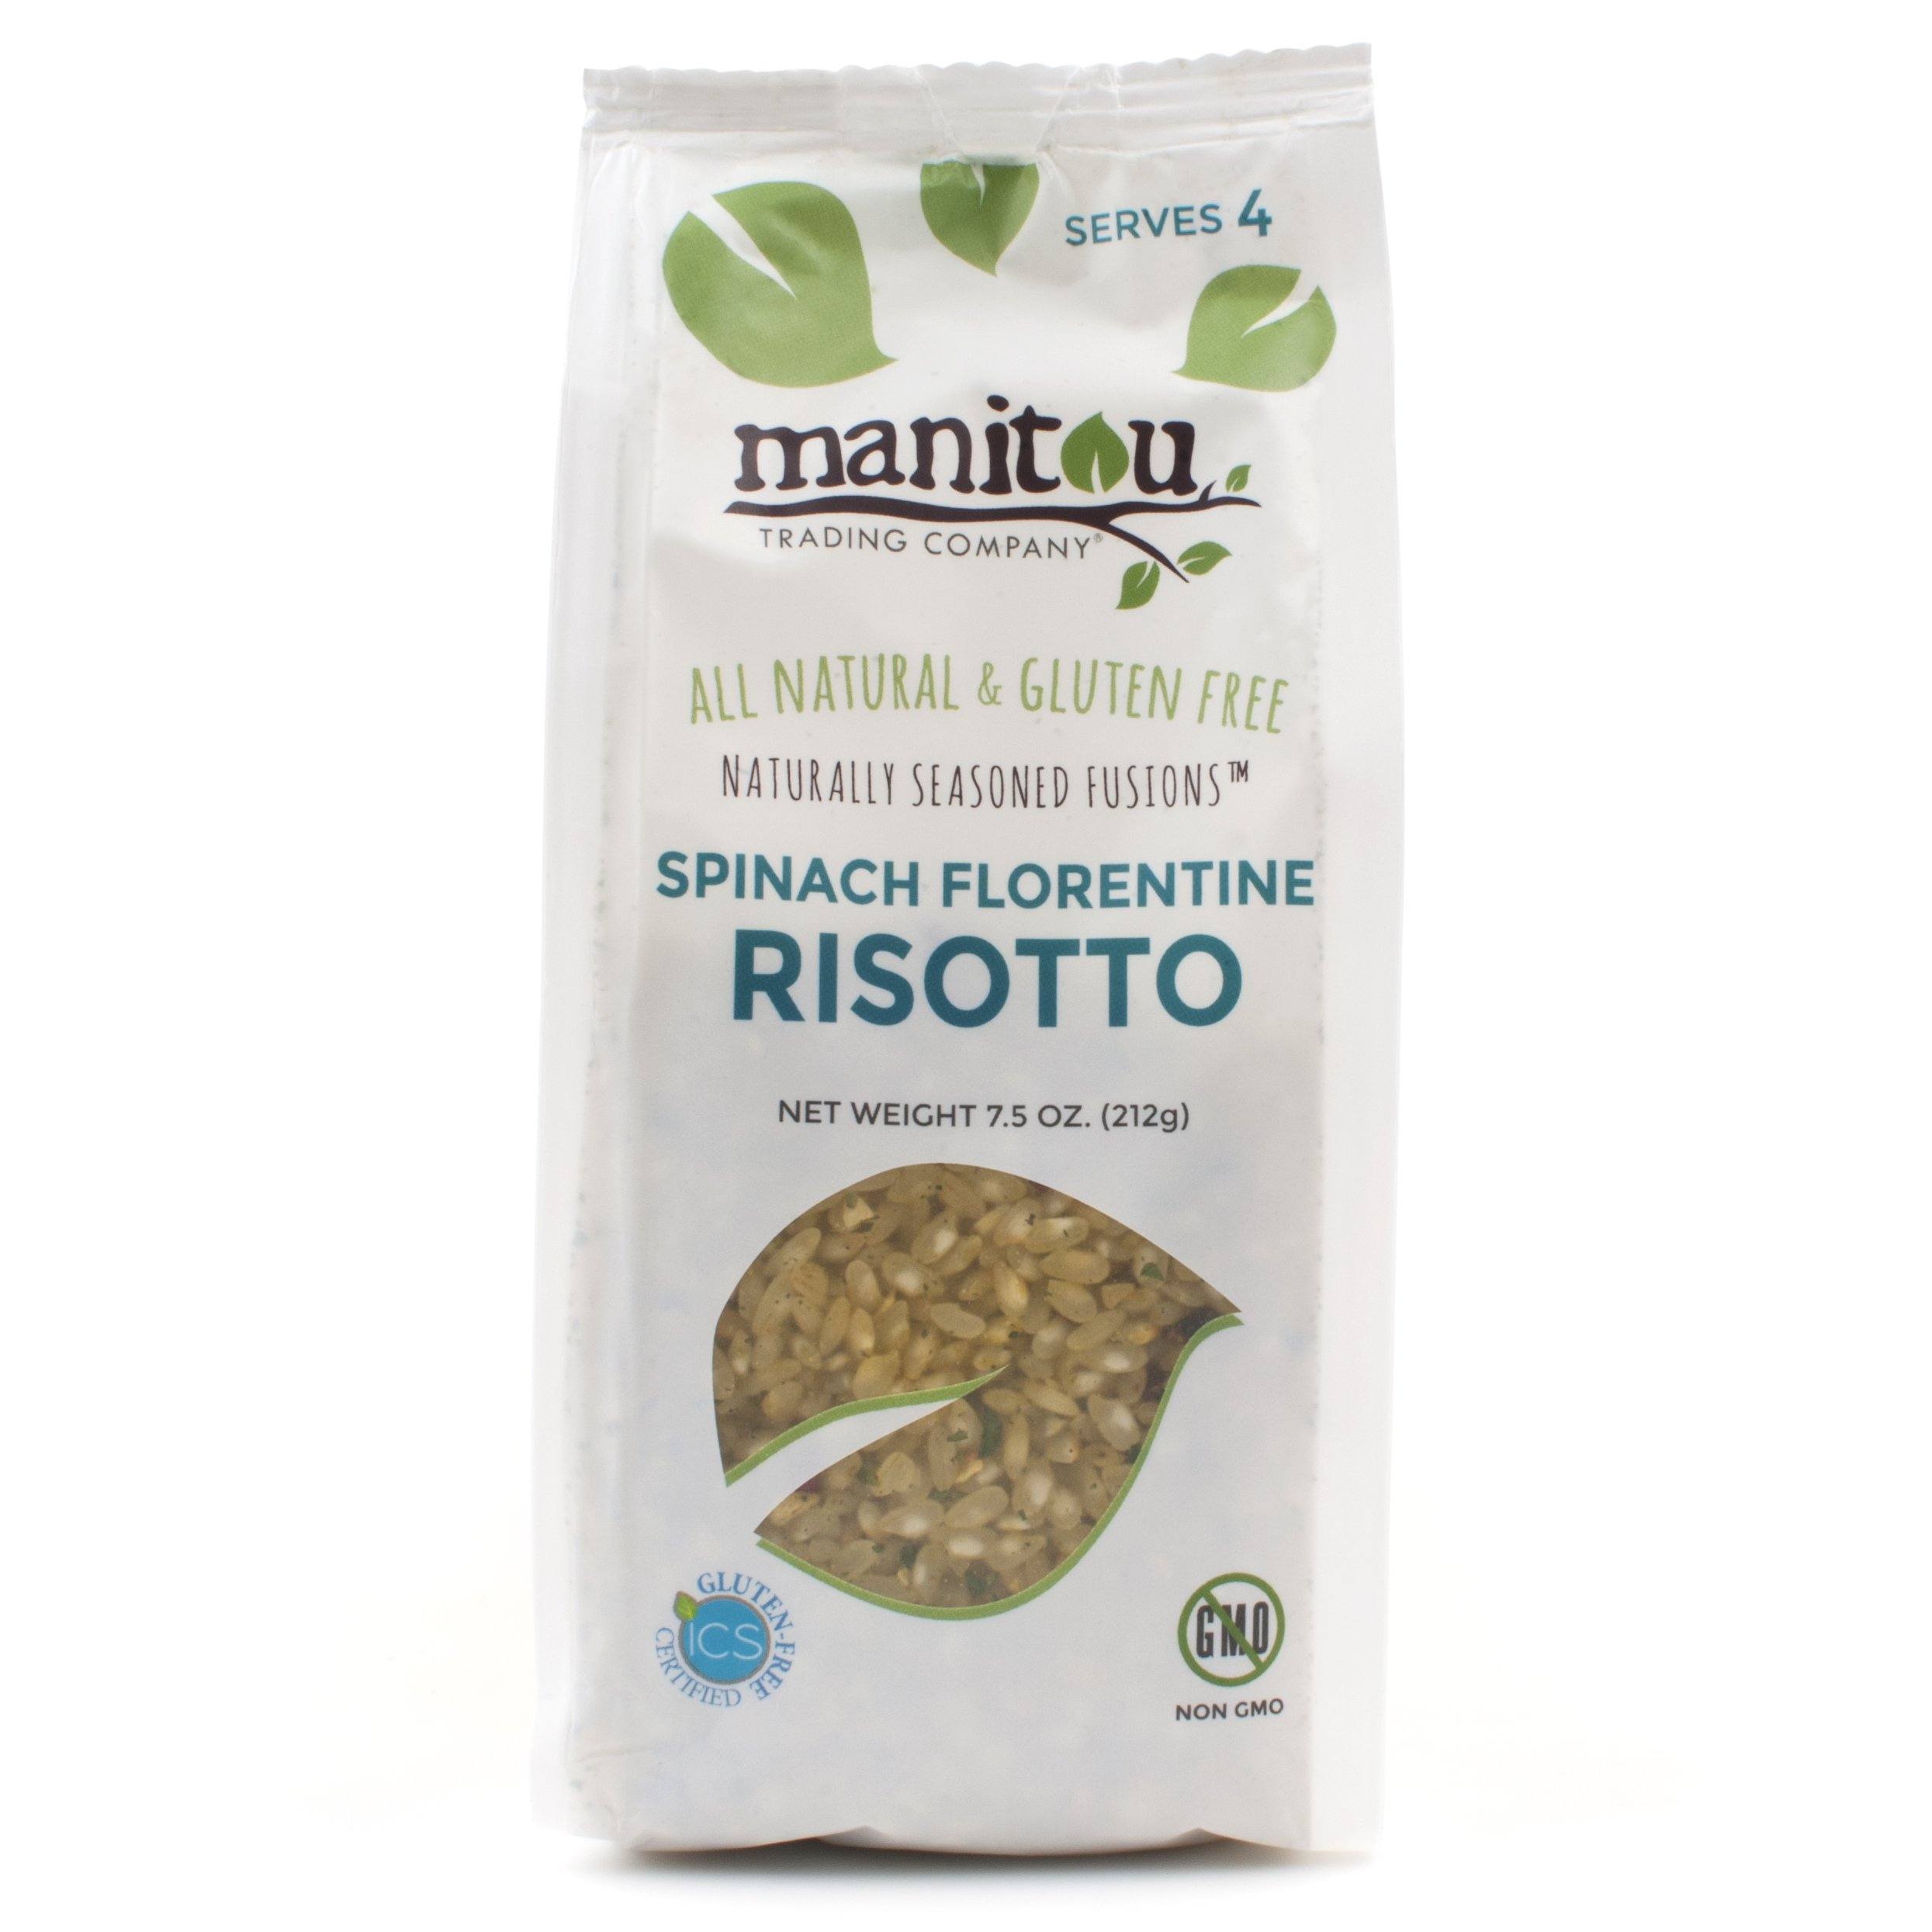 Spinach Florentine Risotto by Manitou Trading Company, 7.5 Oz Quad Seal (Case of 6) by Manitou Trading Company